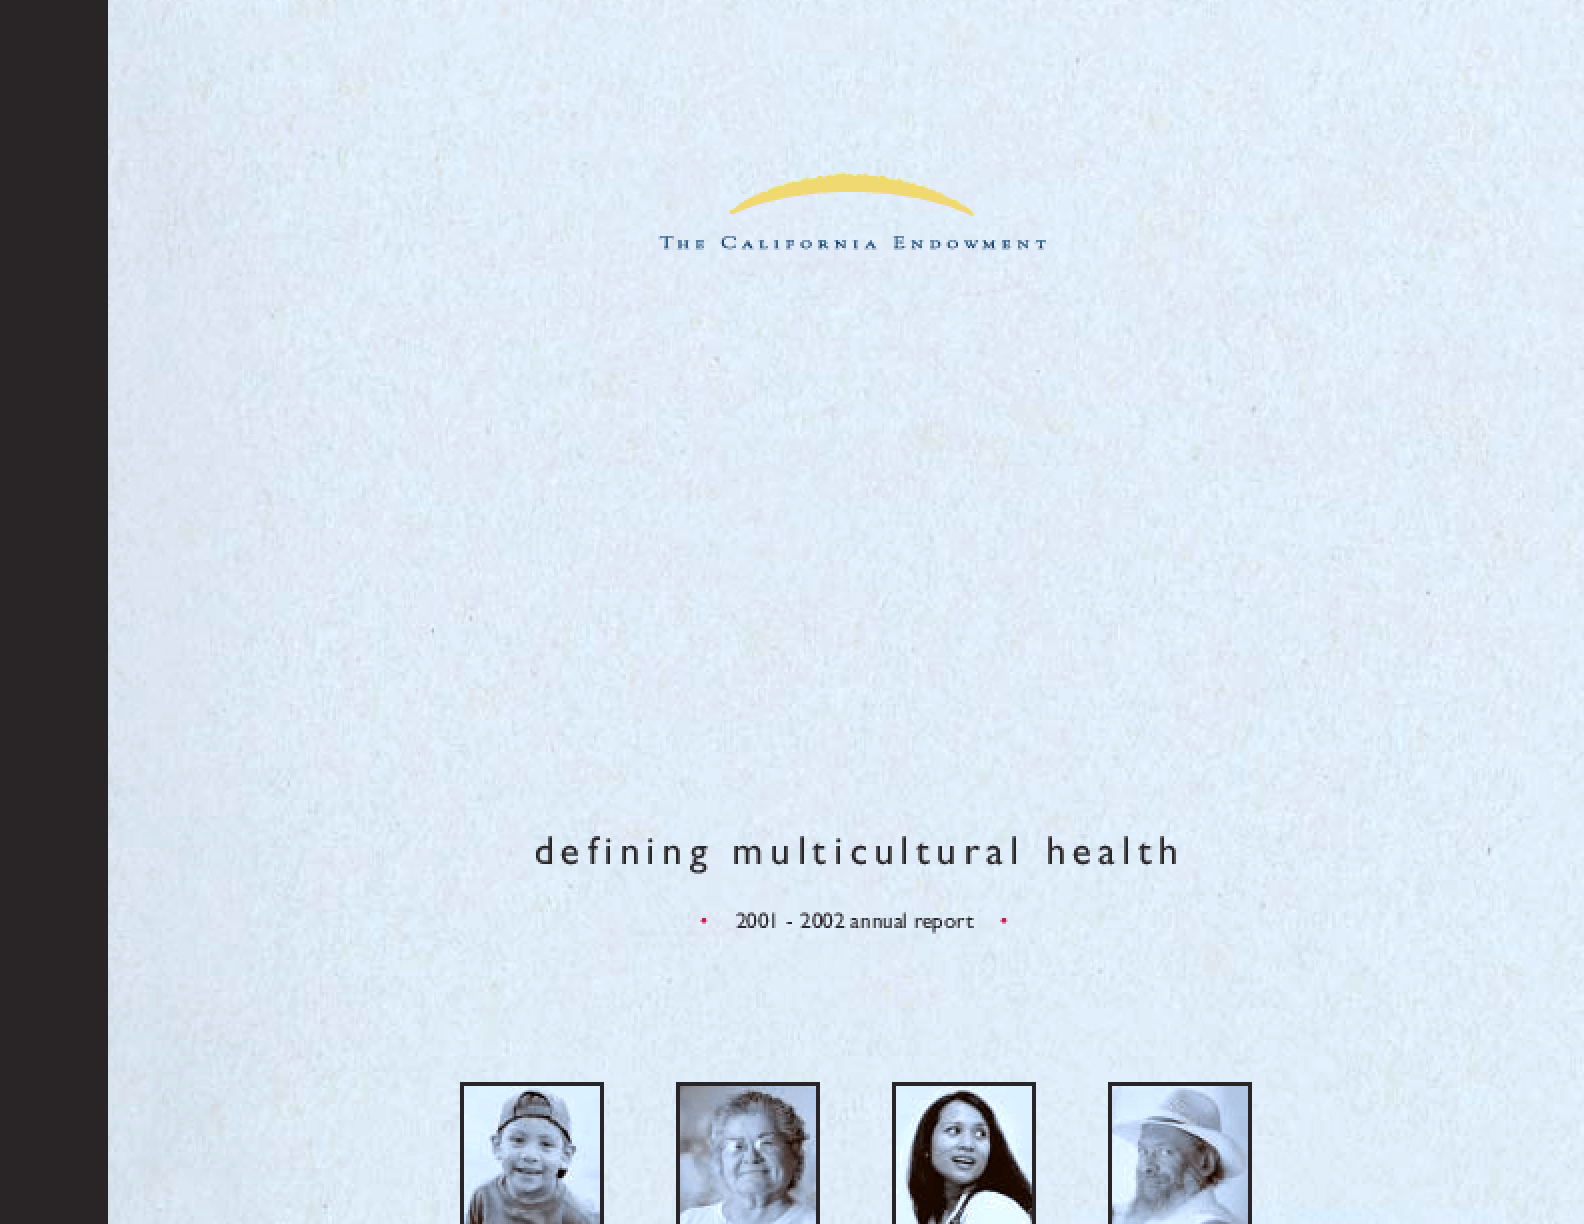 California Endowment - 2001-2002 Annual Report: Defining Multicultural Health